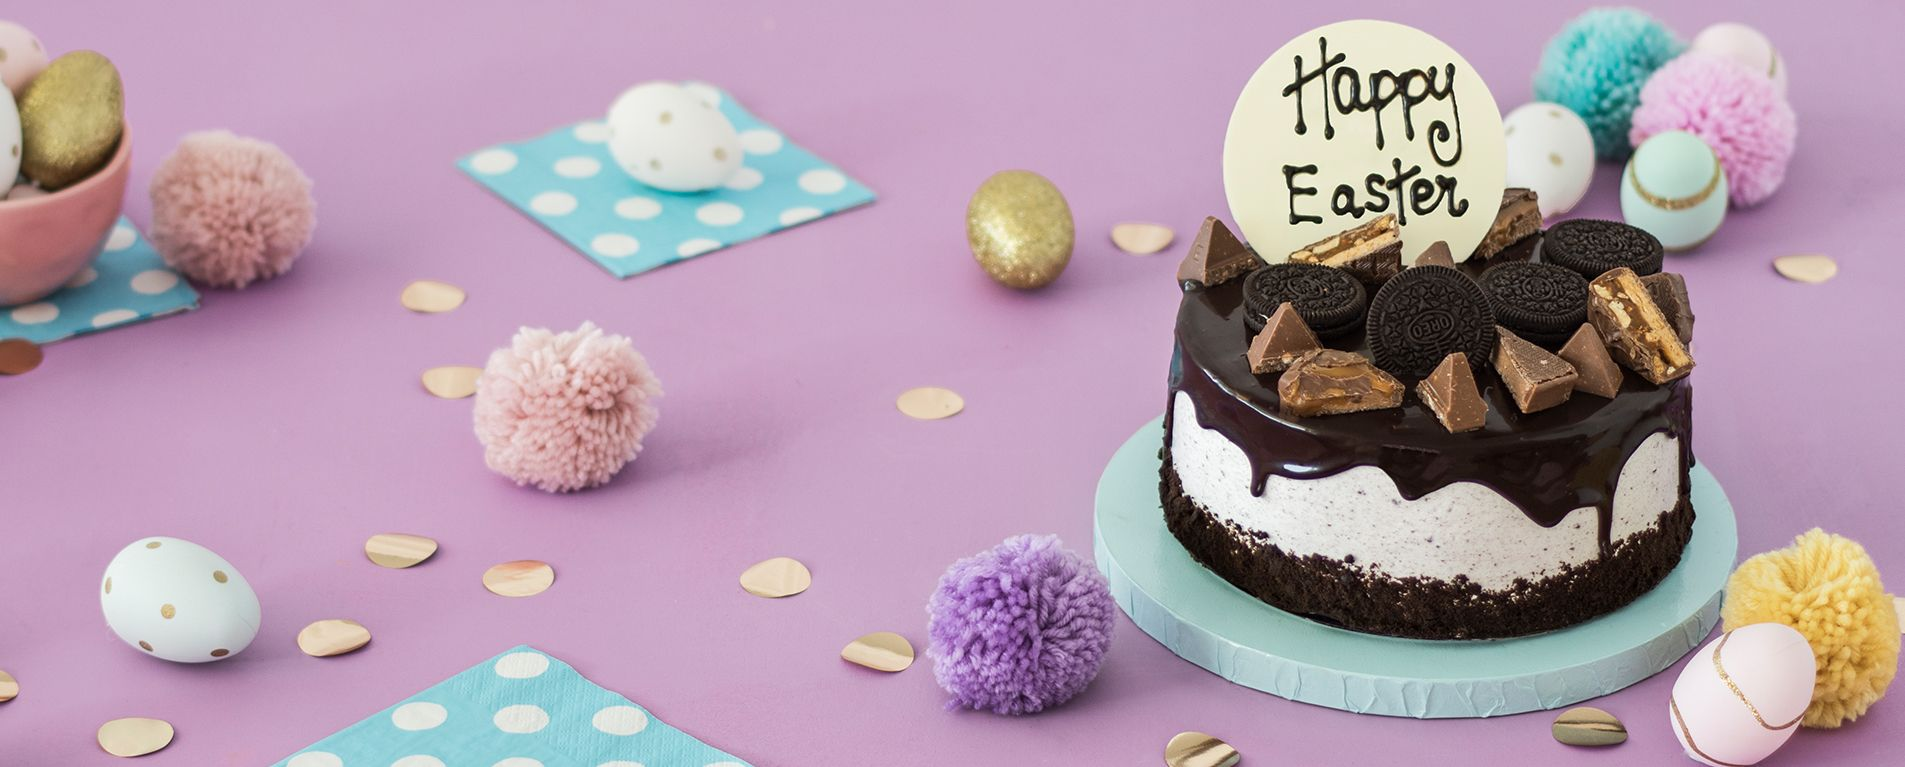 EASTER COOKIES AND CREAM PARTY CAKE